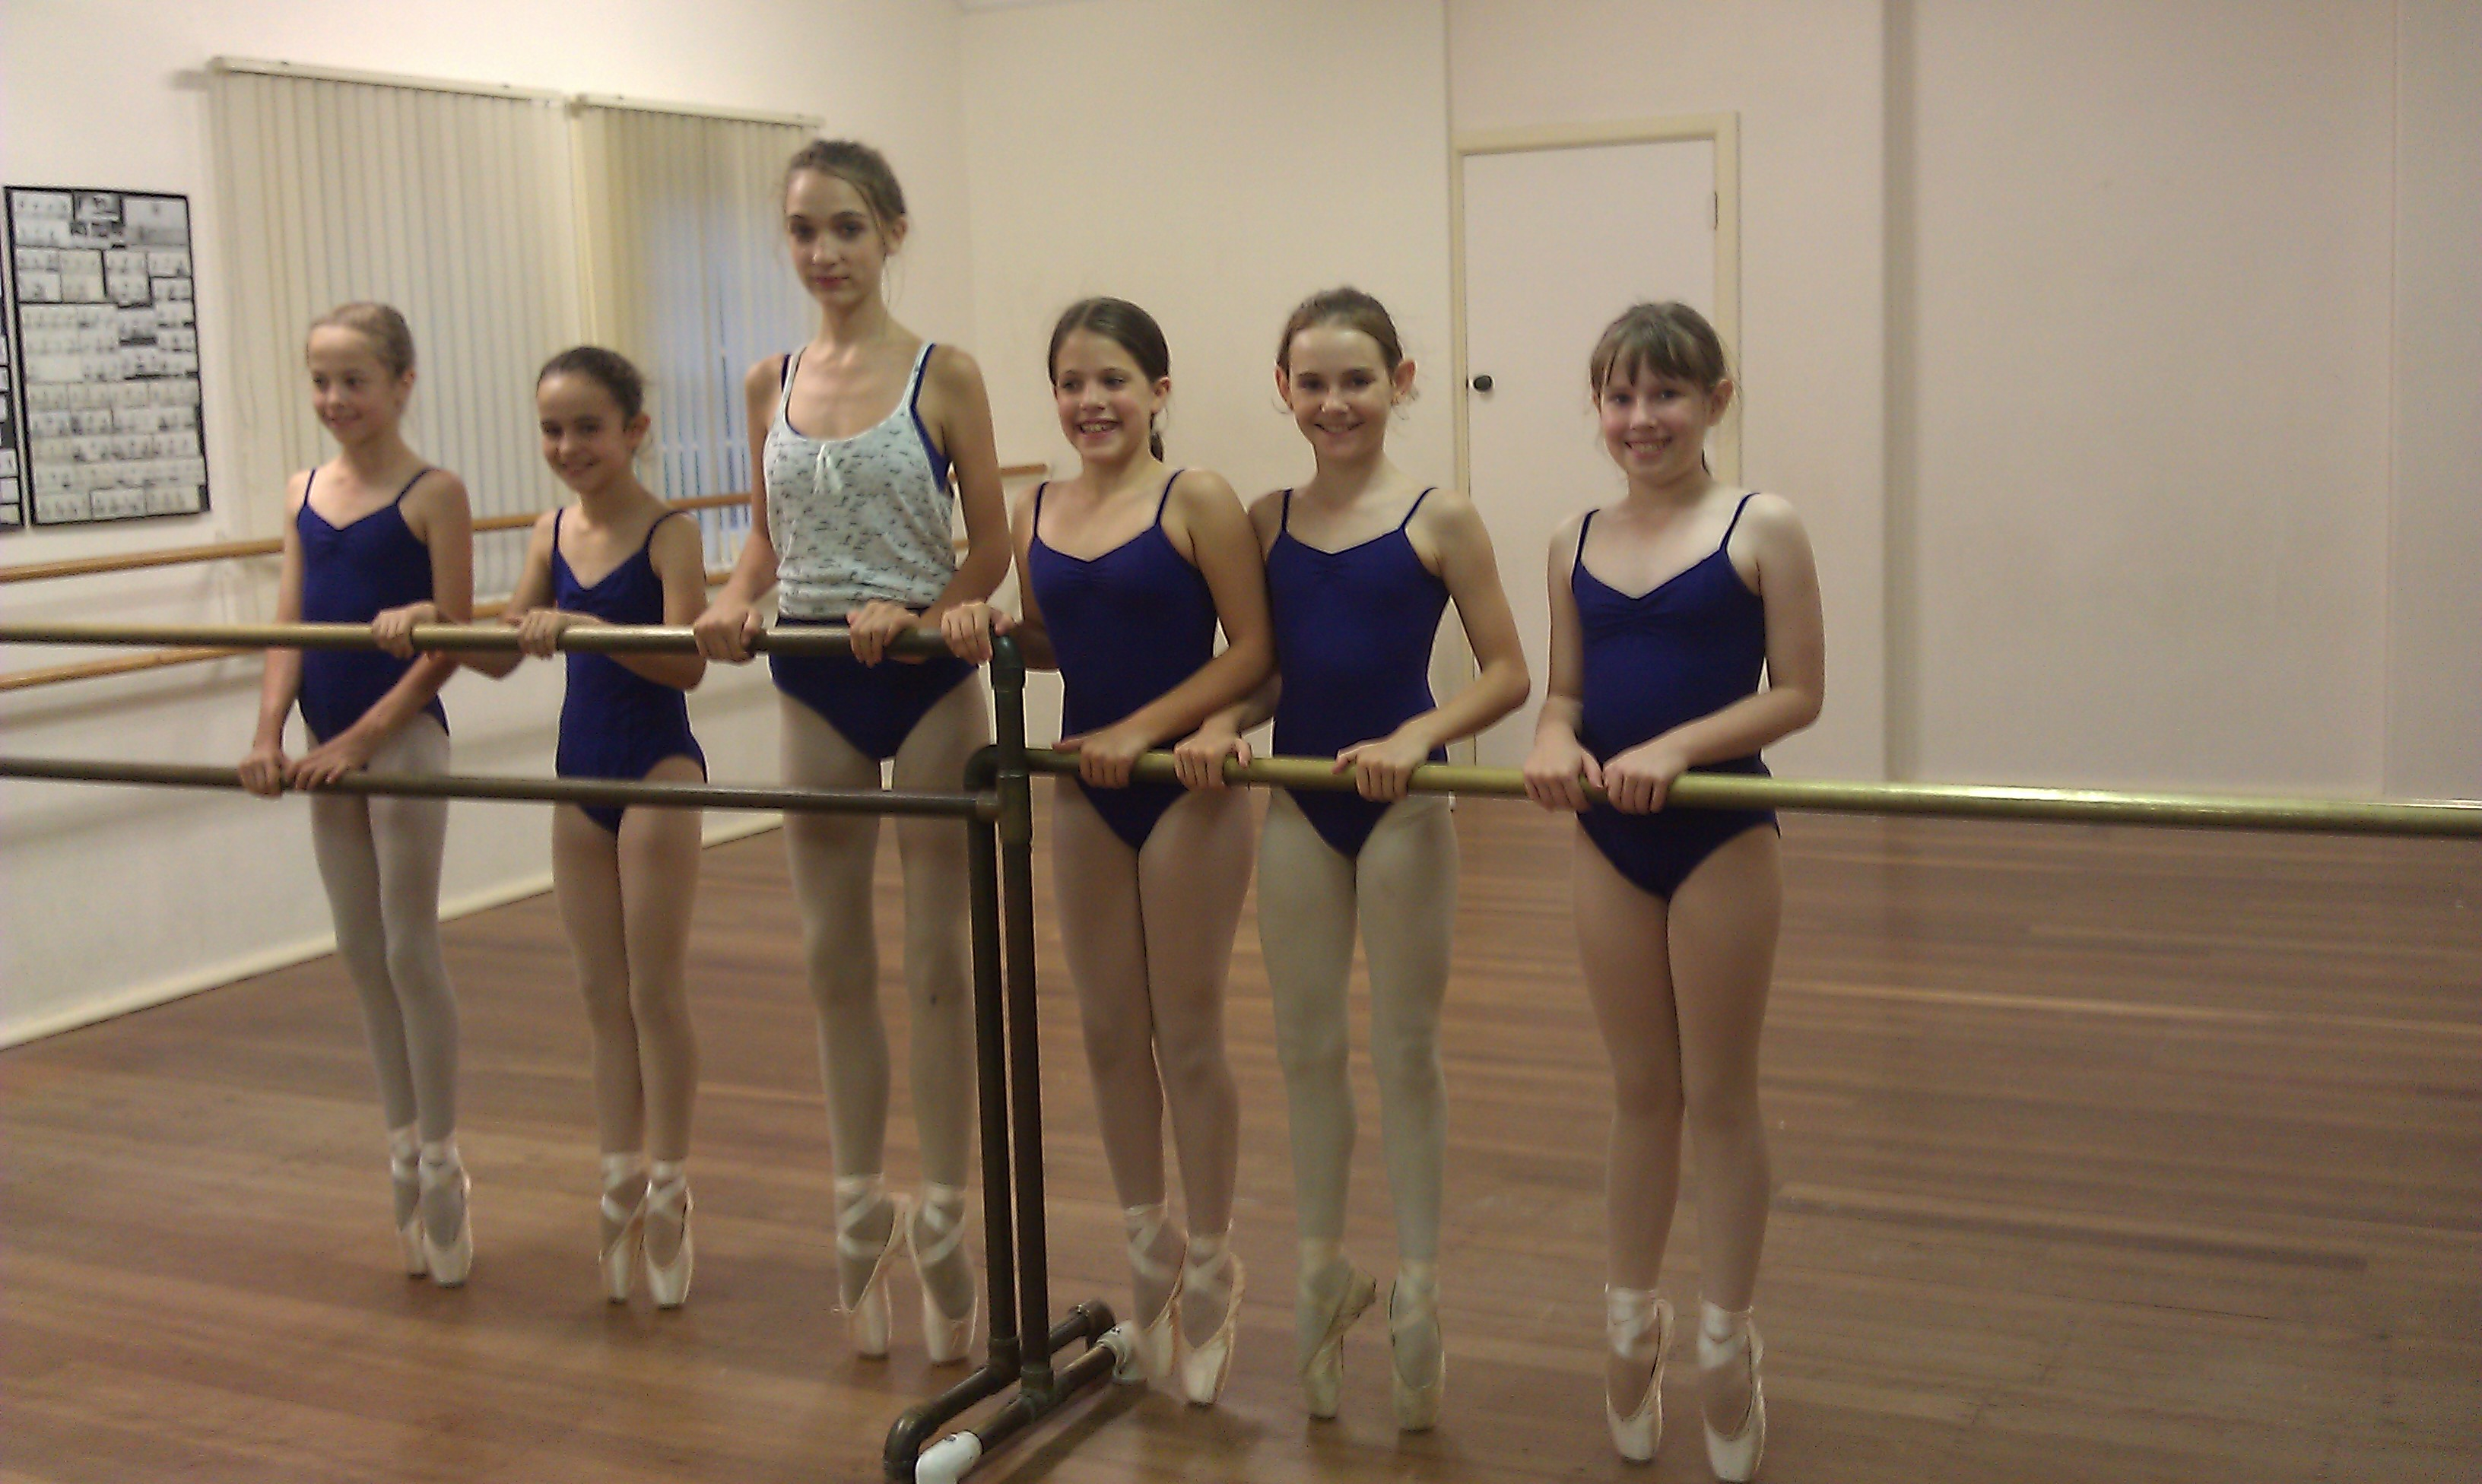 First day en pointe at Anastasia's Ballet School, in Sydney, Australia.